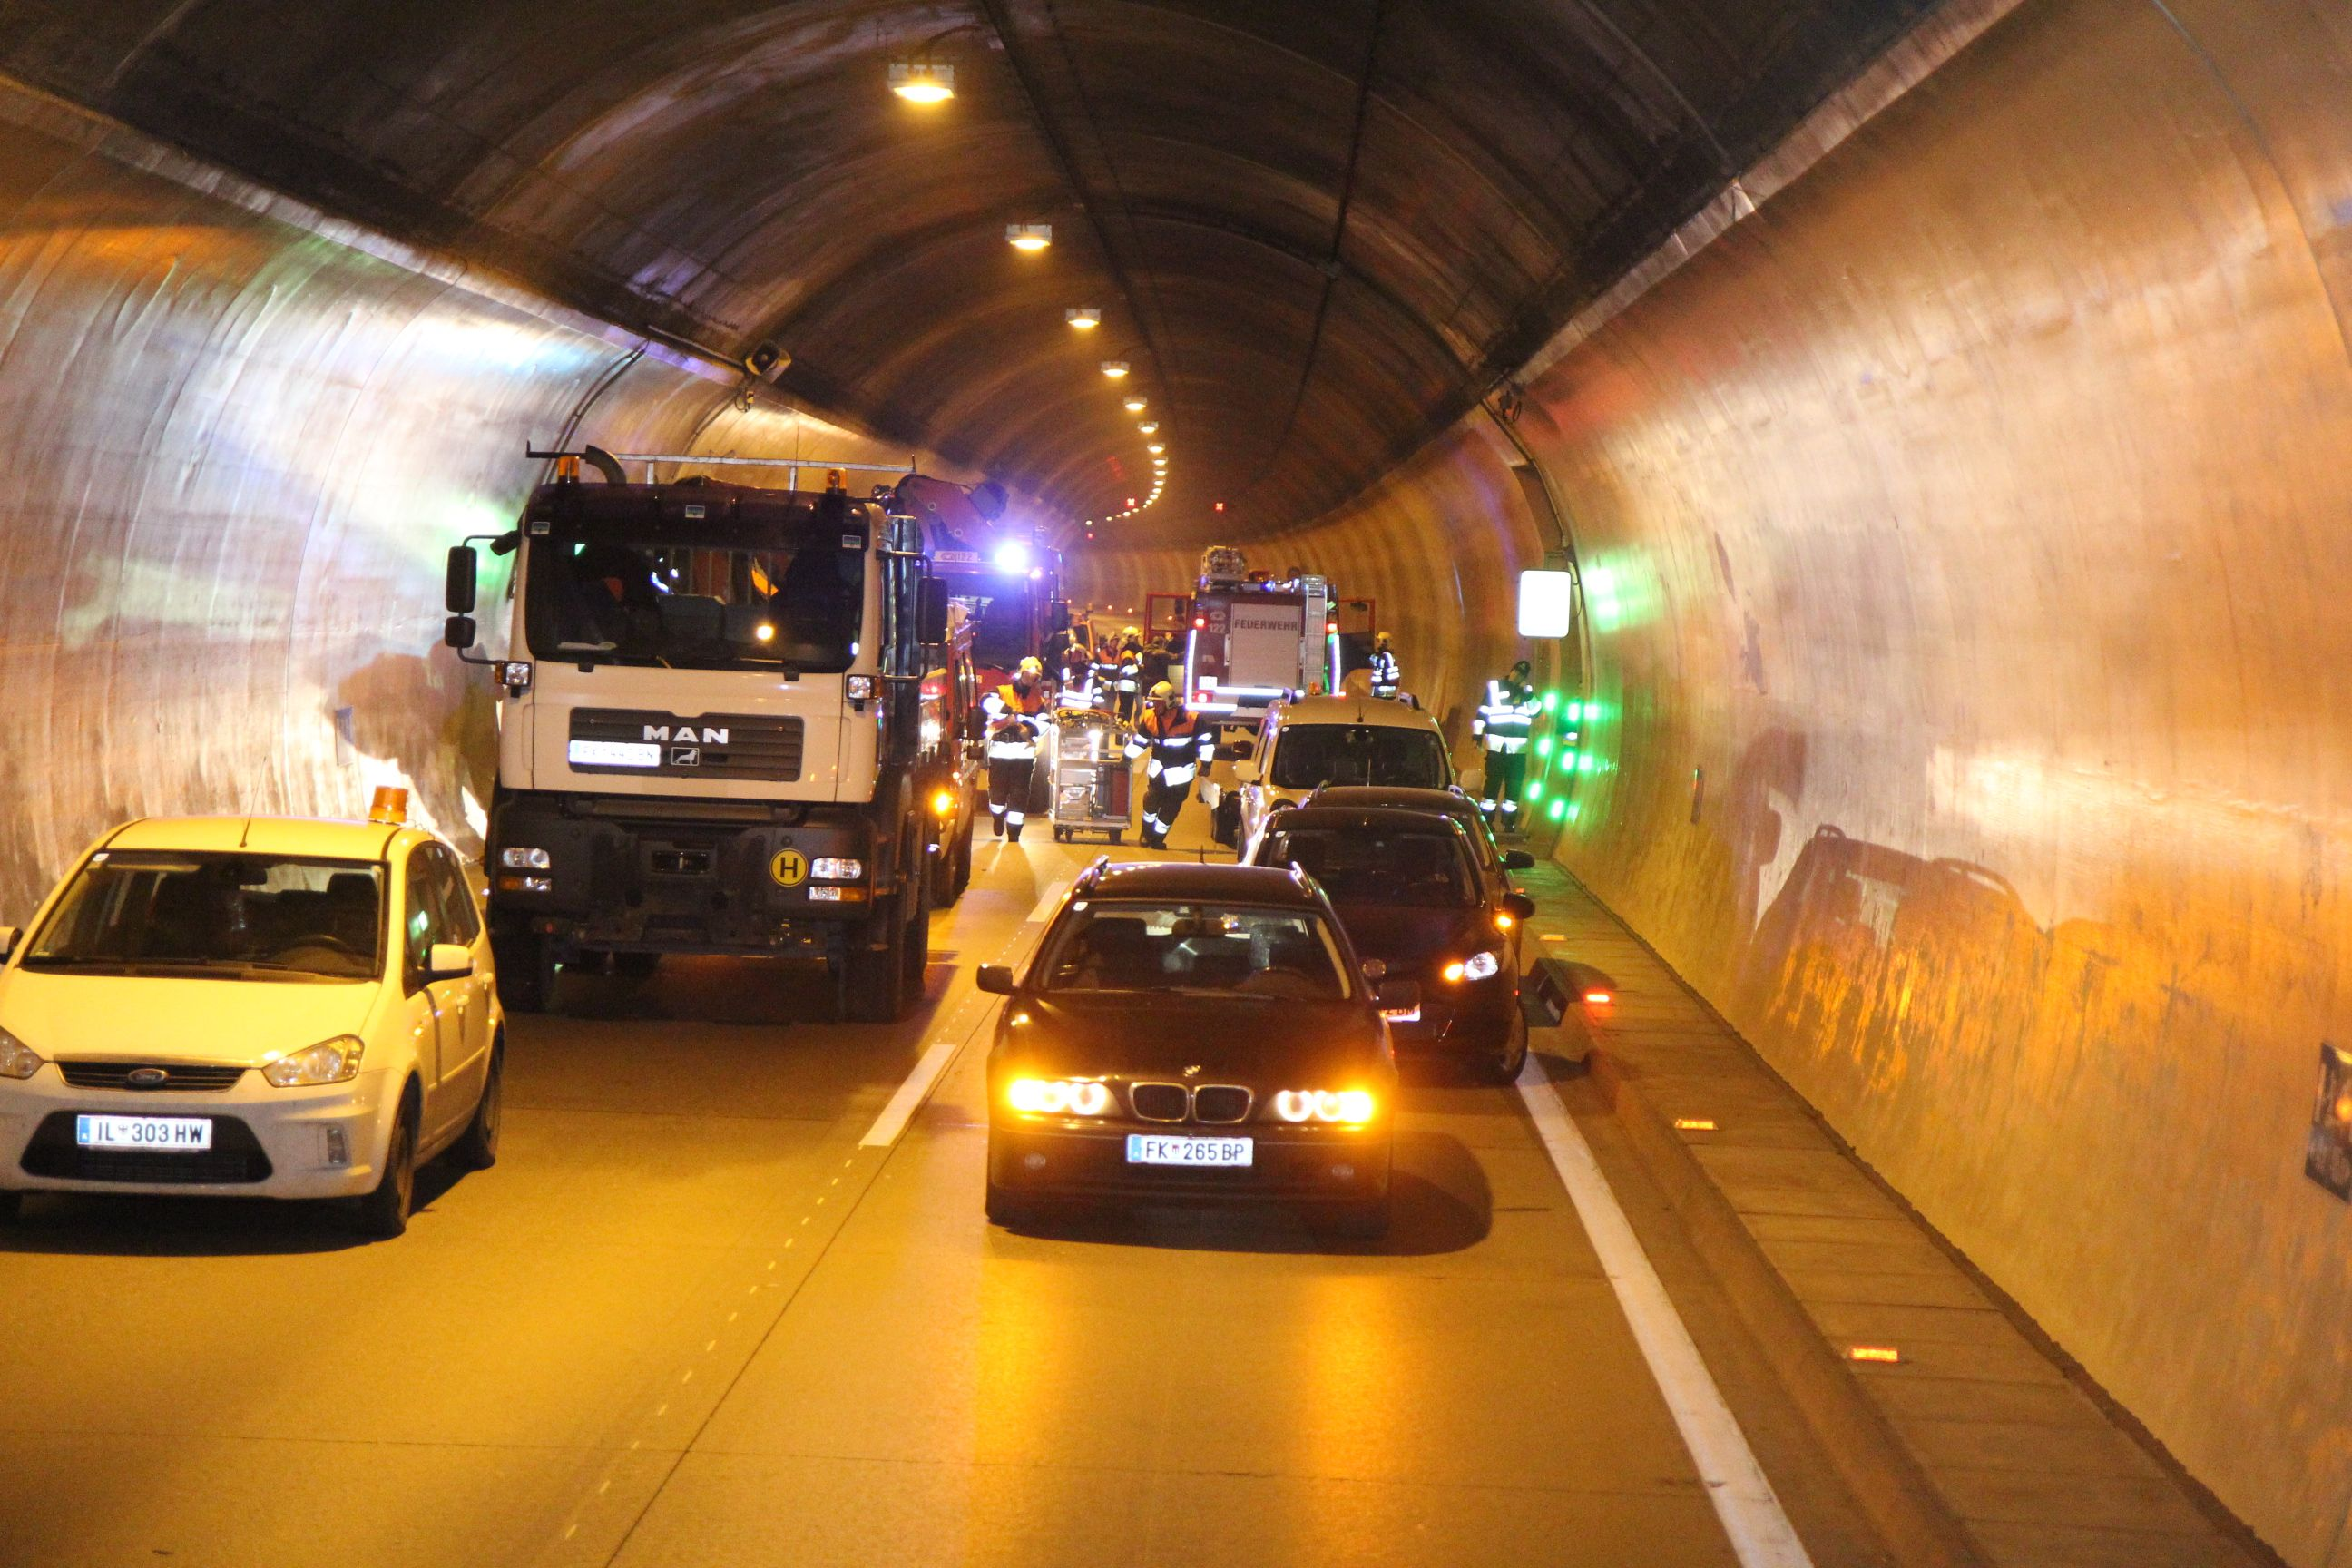 Ambergtunnel am Montag Abend gesperrt